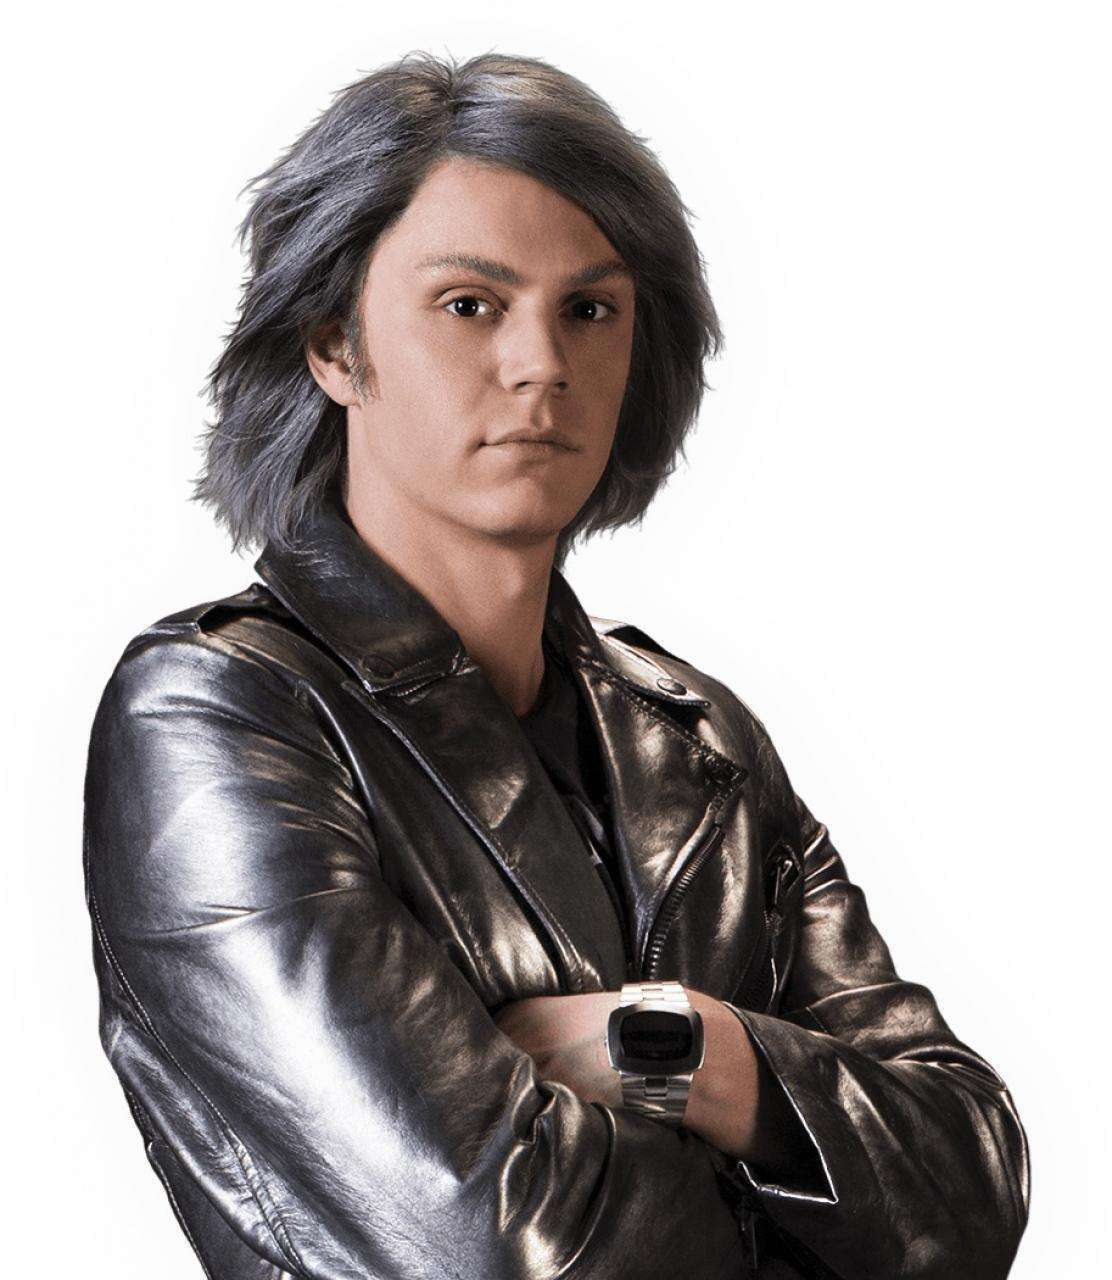 X Men Days of Future Past Peters